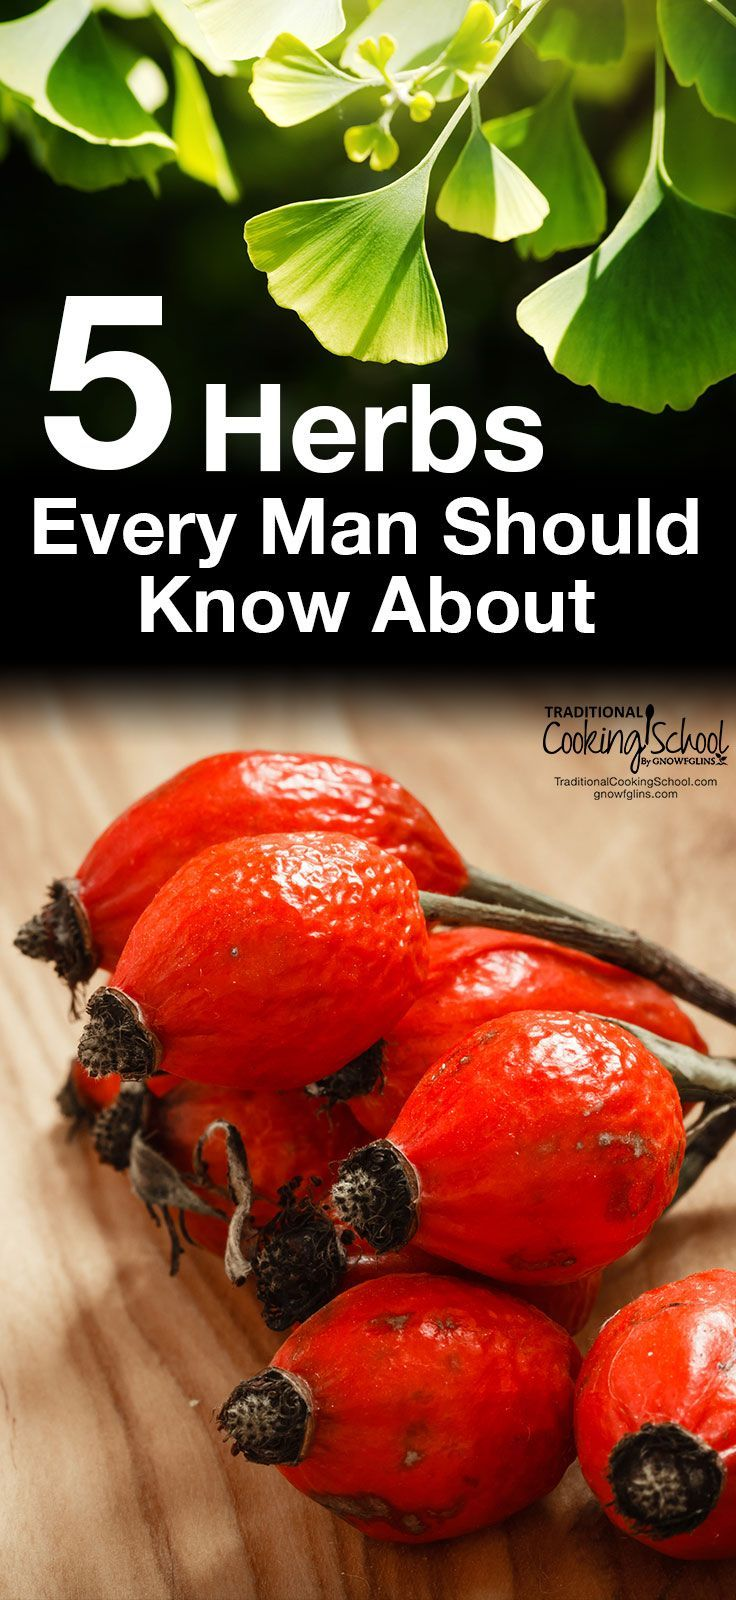 5 Herbs Every Man Should Know About   Do you want to be stronger and healthier? Are you looking to increase your energy and protect yourself from disease? For hundreds of years, men have been using herbs to do just that. Here are 5 herbal powerhouses that every man should know about to improve health and vitality.   TraditionalCookingSchool.com